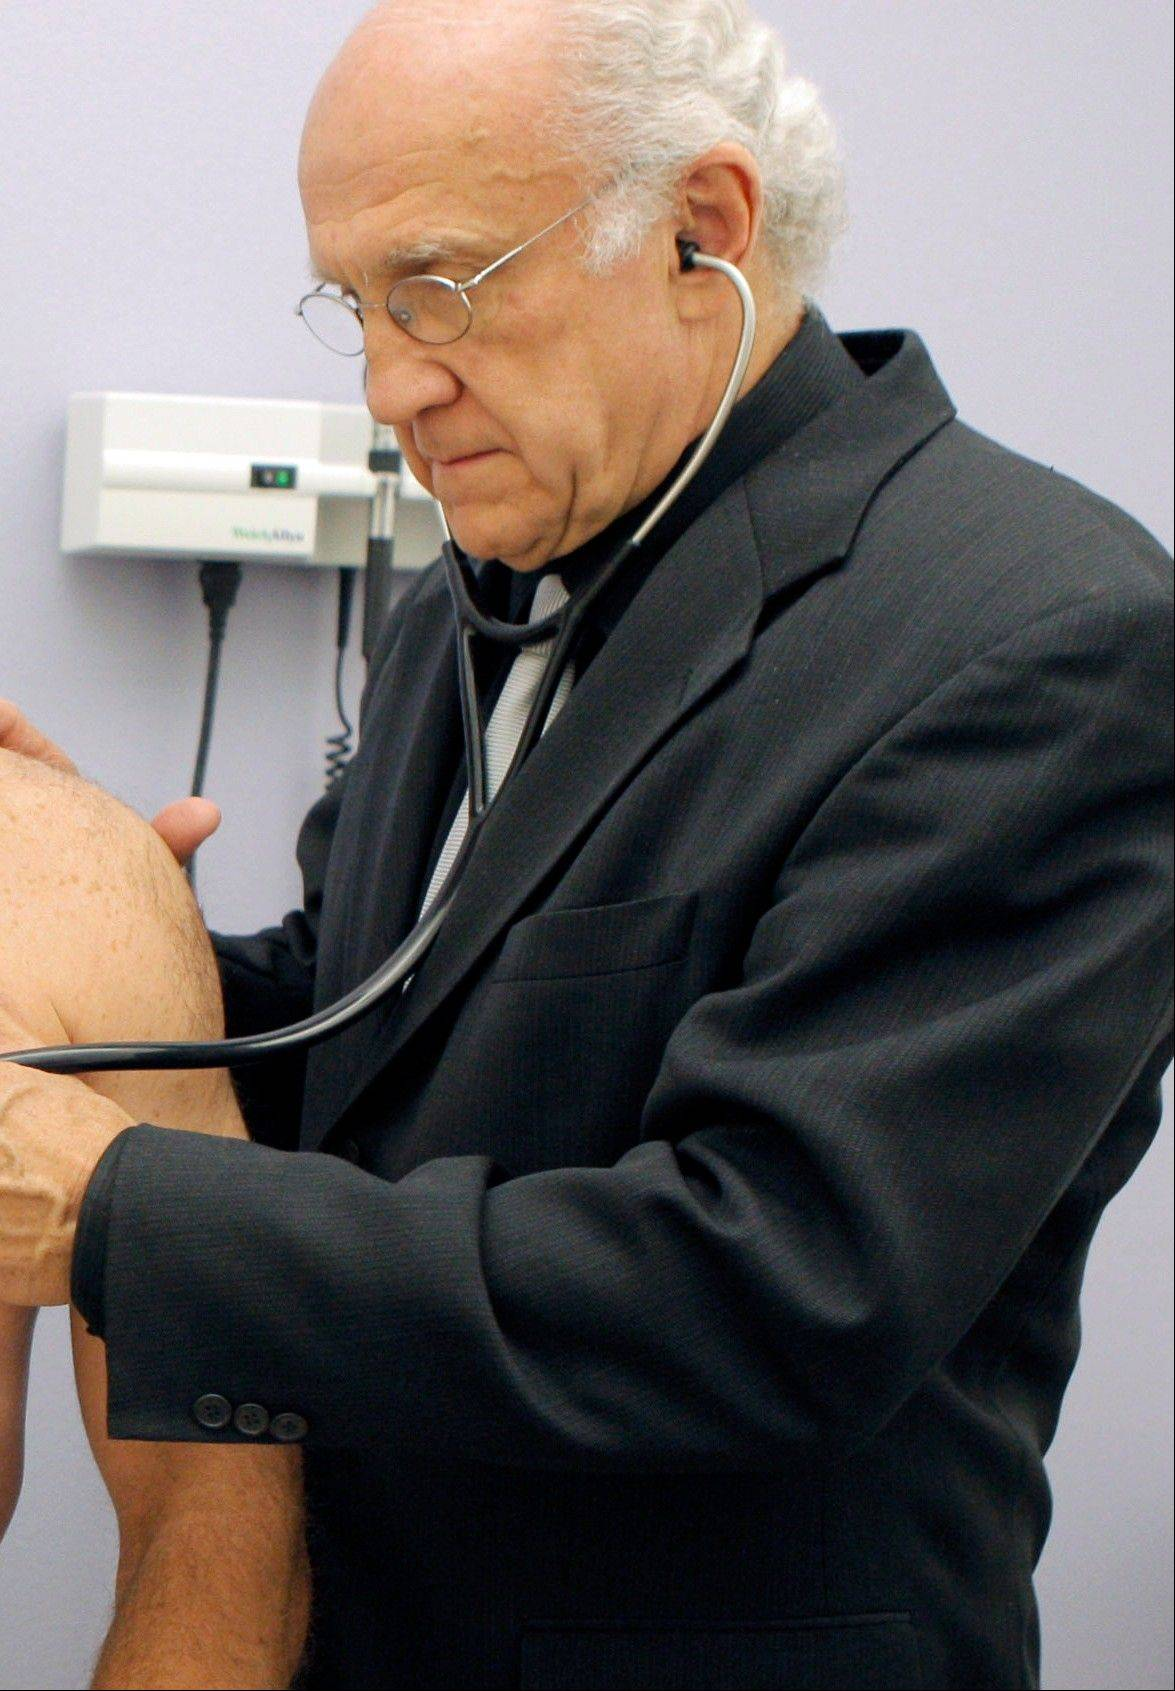 Dr. Mark Molitch of Northwestern University, who helped write medical standards meant to limit HGH treatment to legitimate patients, holds an injector pen that contains approximately a weeks worth of doses for a patient in need of the drug. An Associated Press investigation shows that a federal crackdown on illicit foreign supplies of human growth hormone has failed to stop rampant misuse.